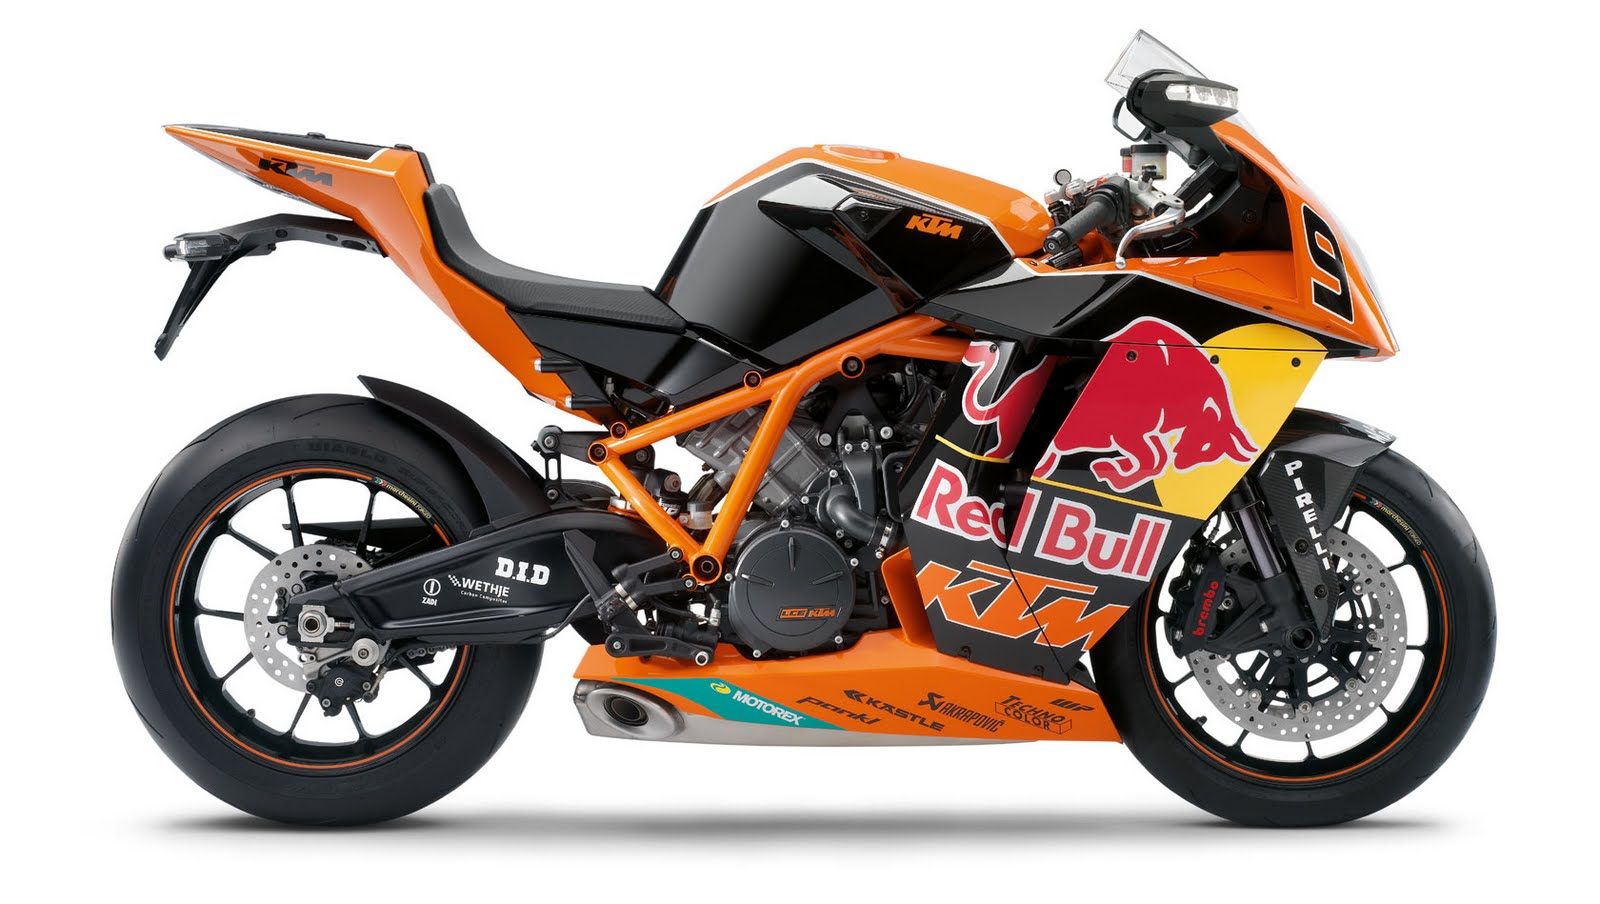 red bull limited edition ktm 1190 rc8r 2010 bikes and motor sport picture wallpaper and photos. Black Bedroom Furniture Sets. Home Design Ideas